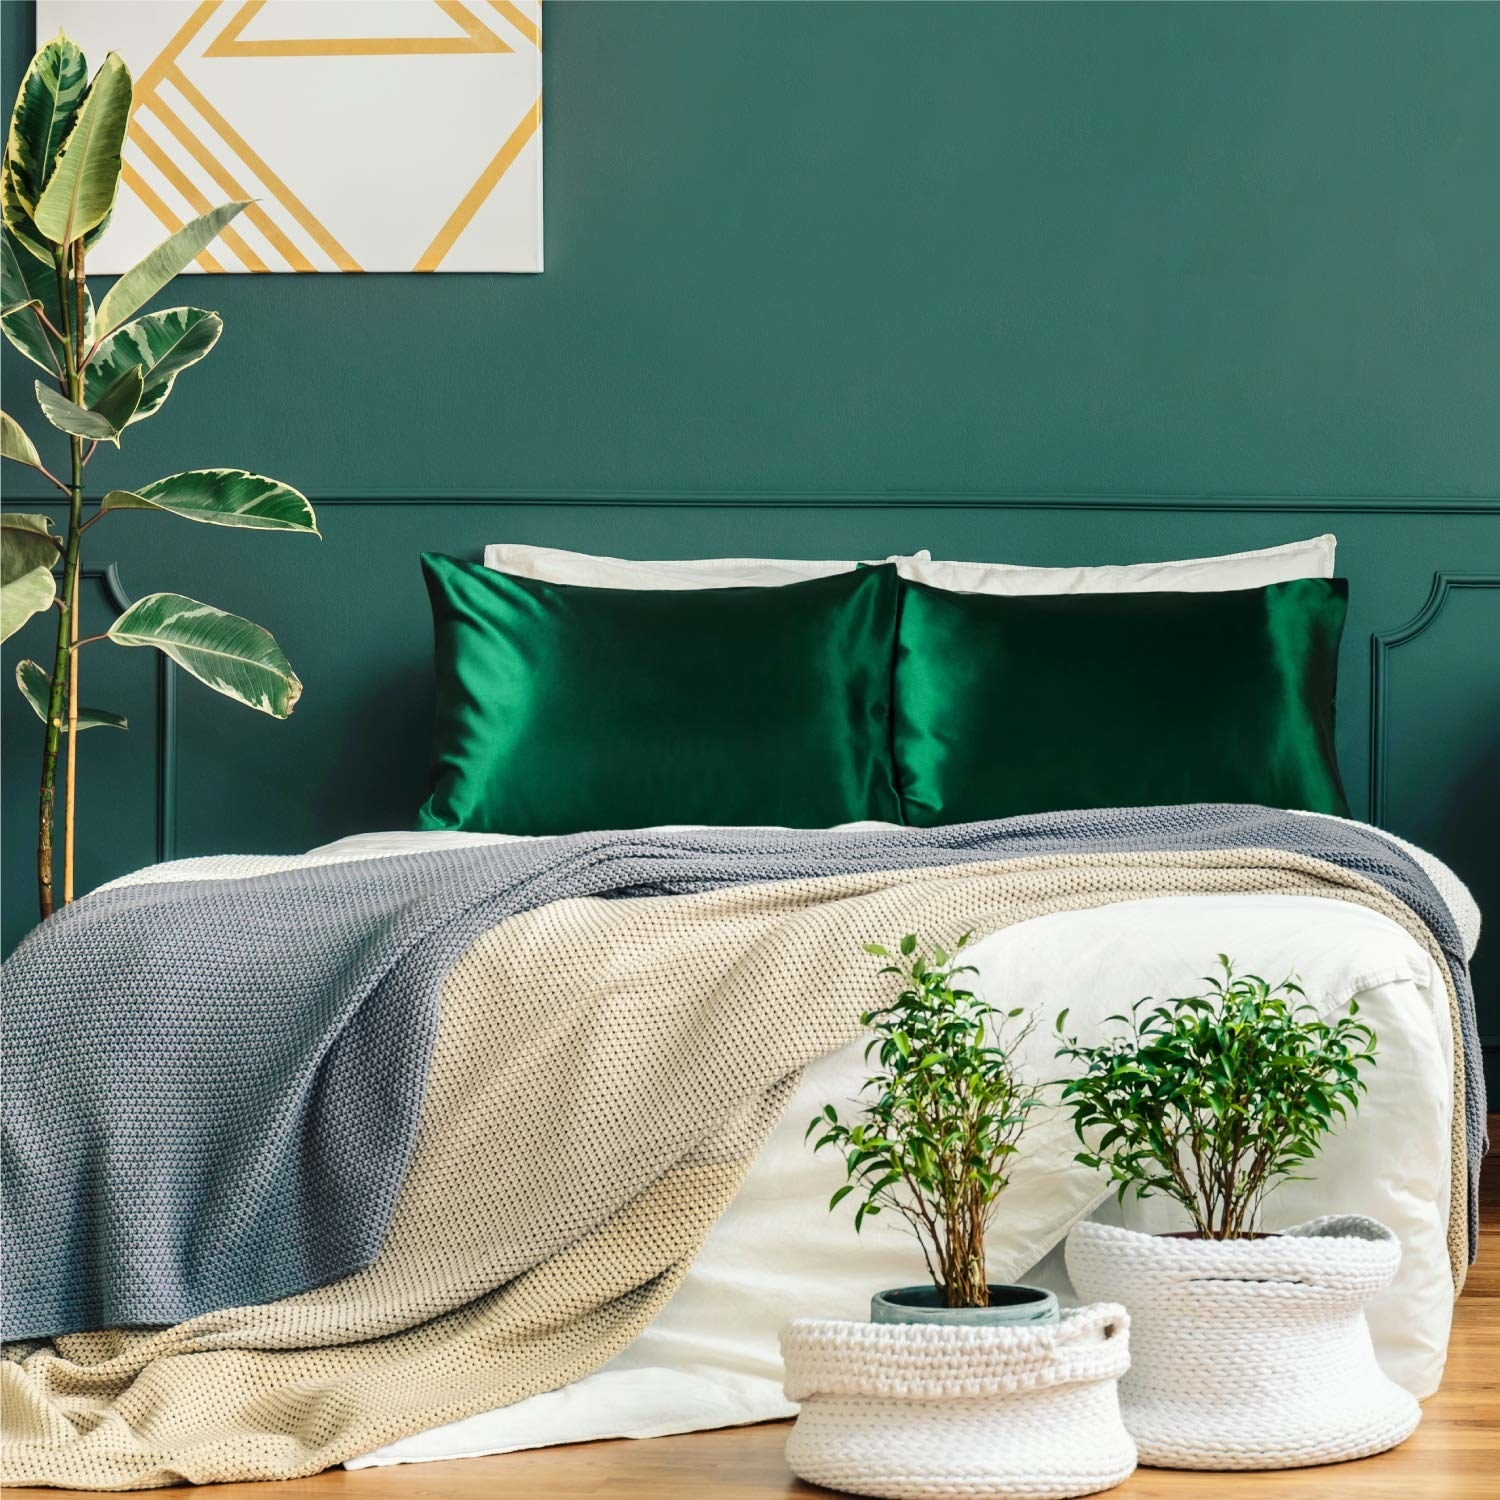 green satin pillowcases on a bed